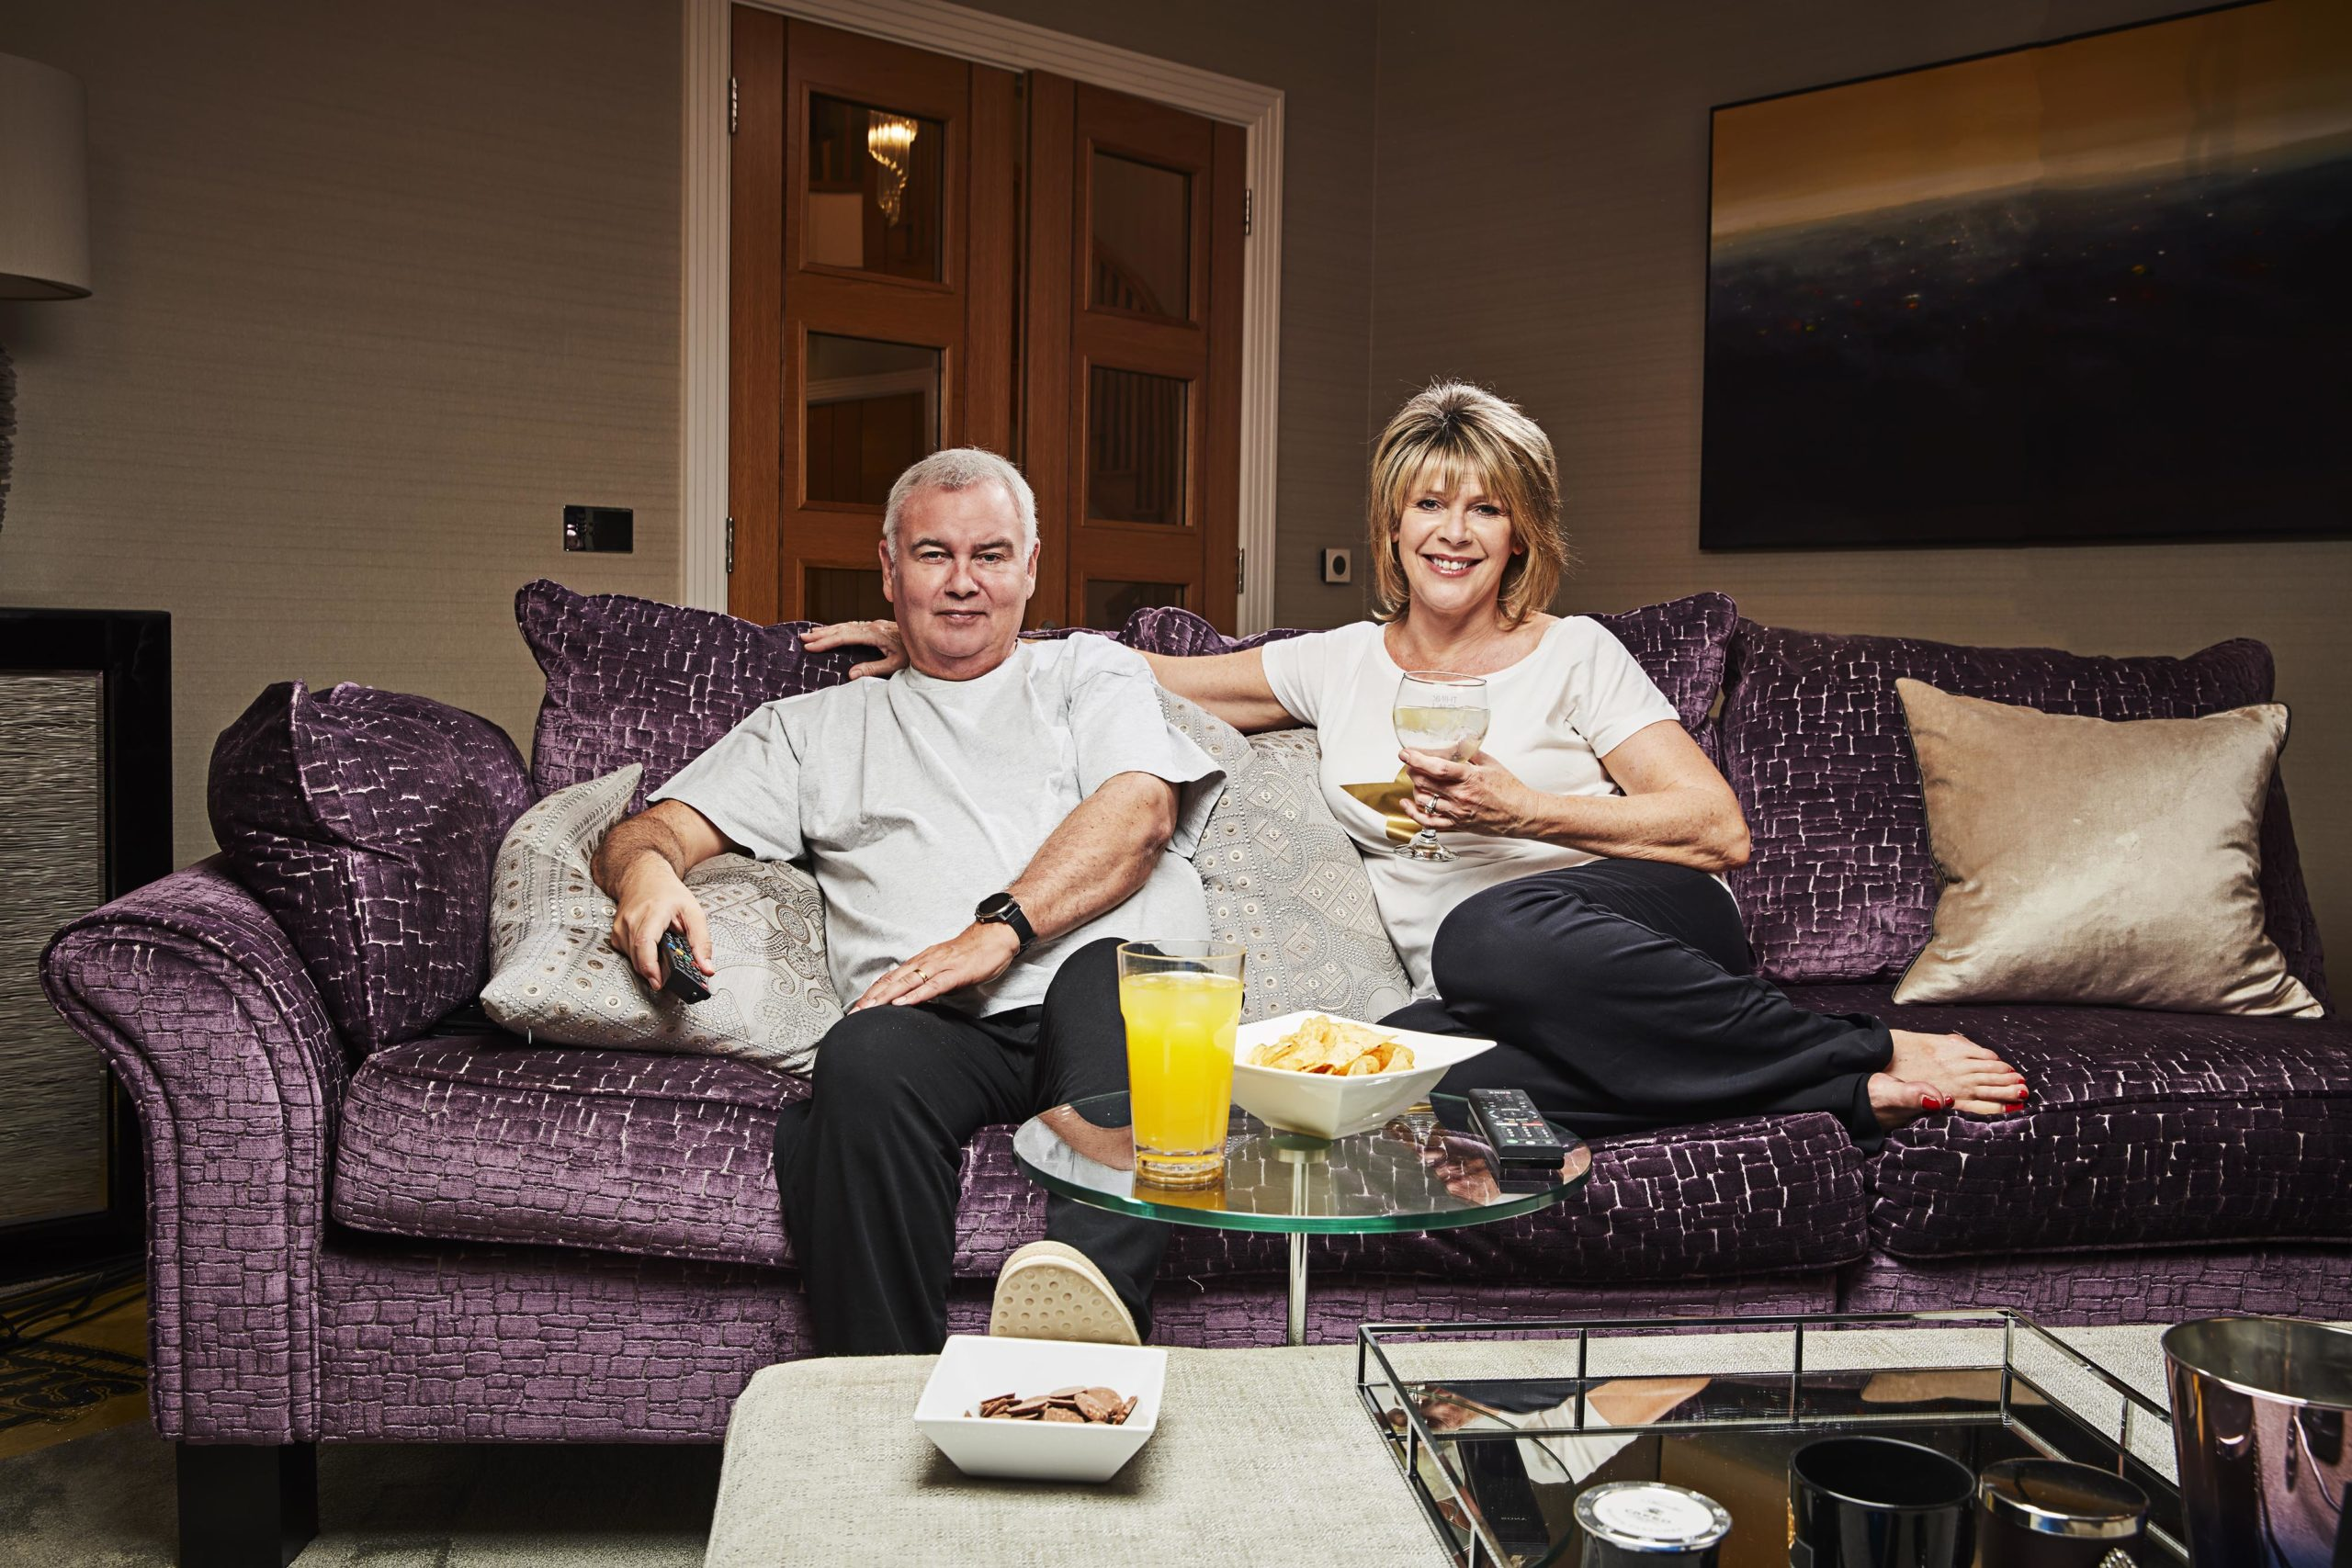 Gogglebox apologises to Eamonn Holmes over editing